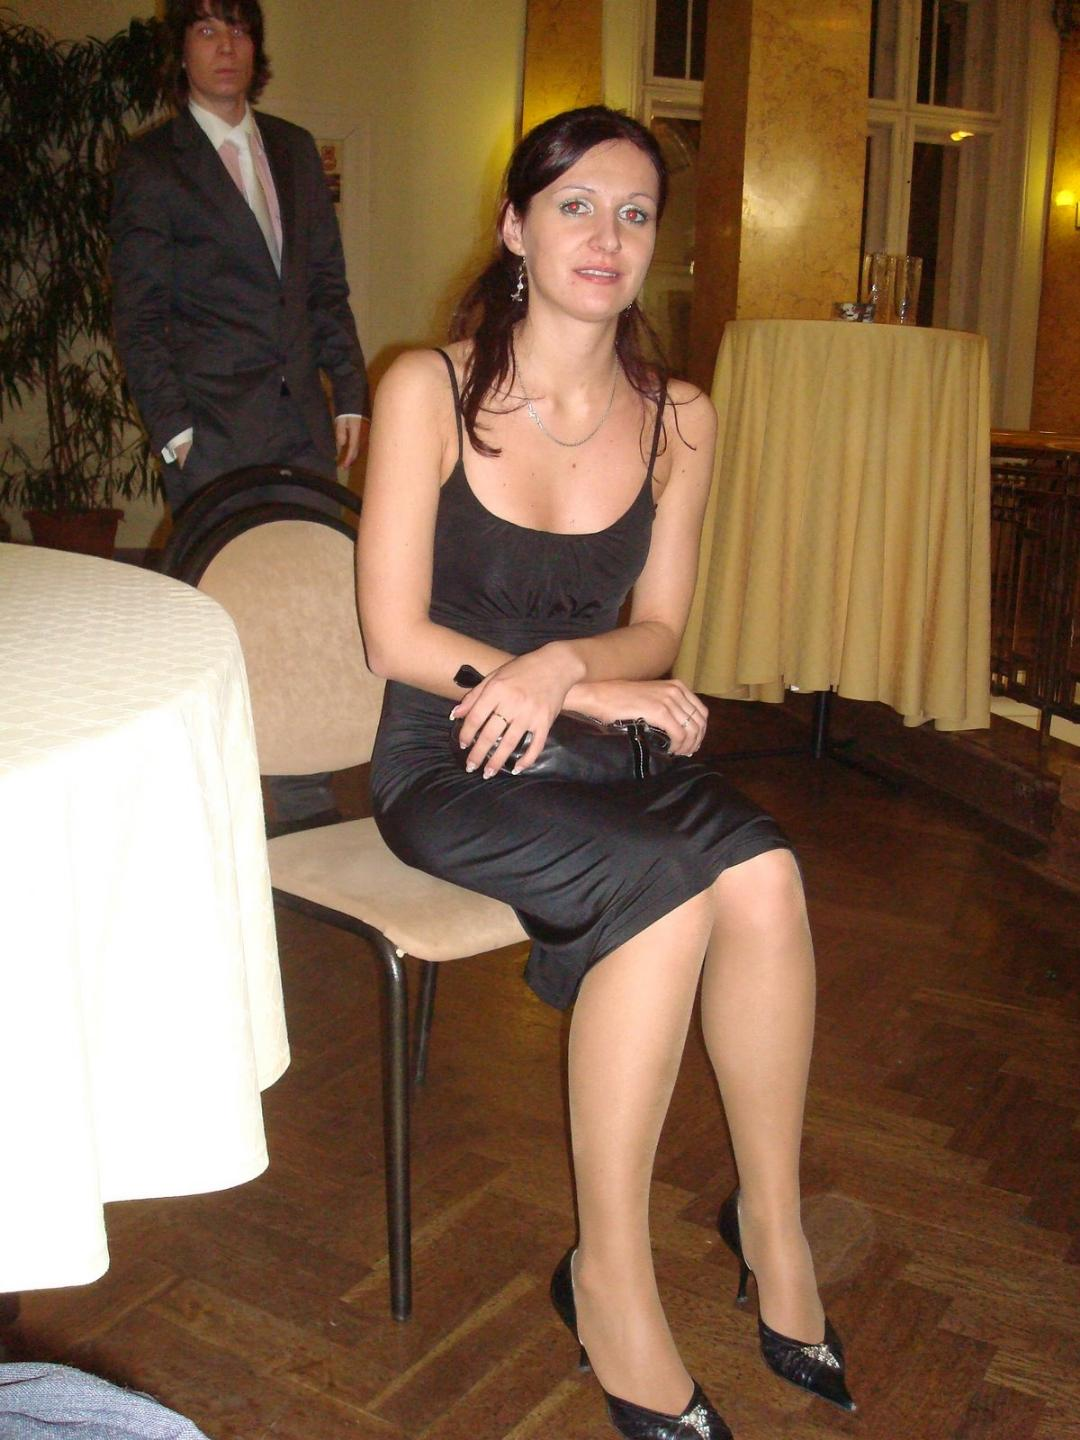 in-sexual-pantyhose-and-high-mexican-handjob-pic